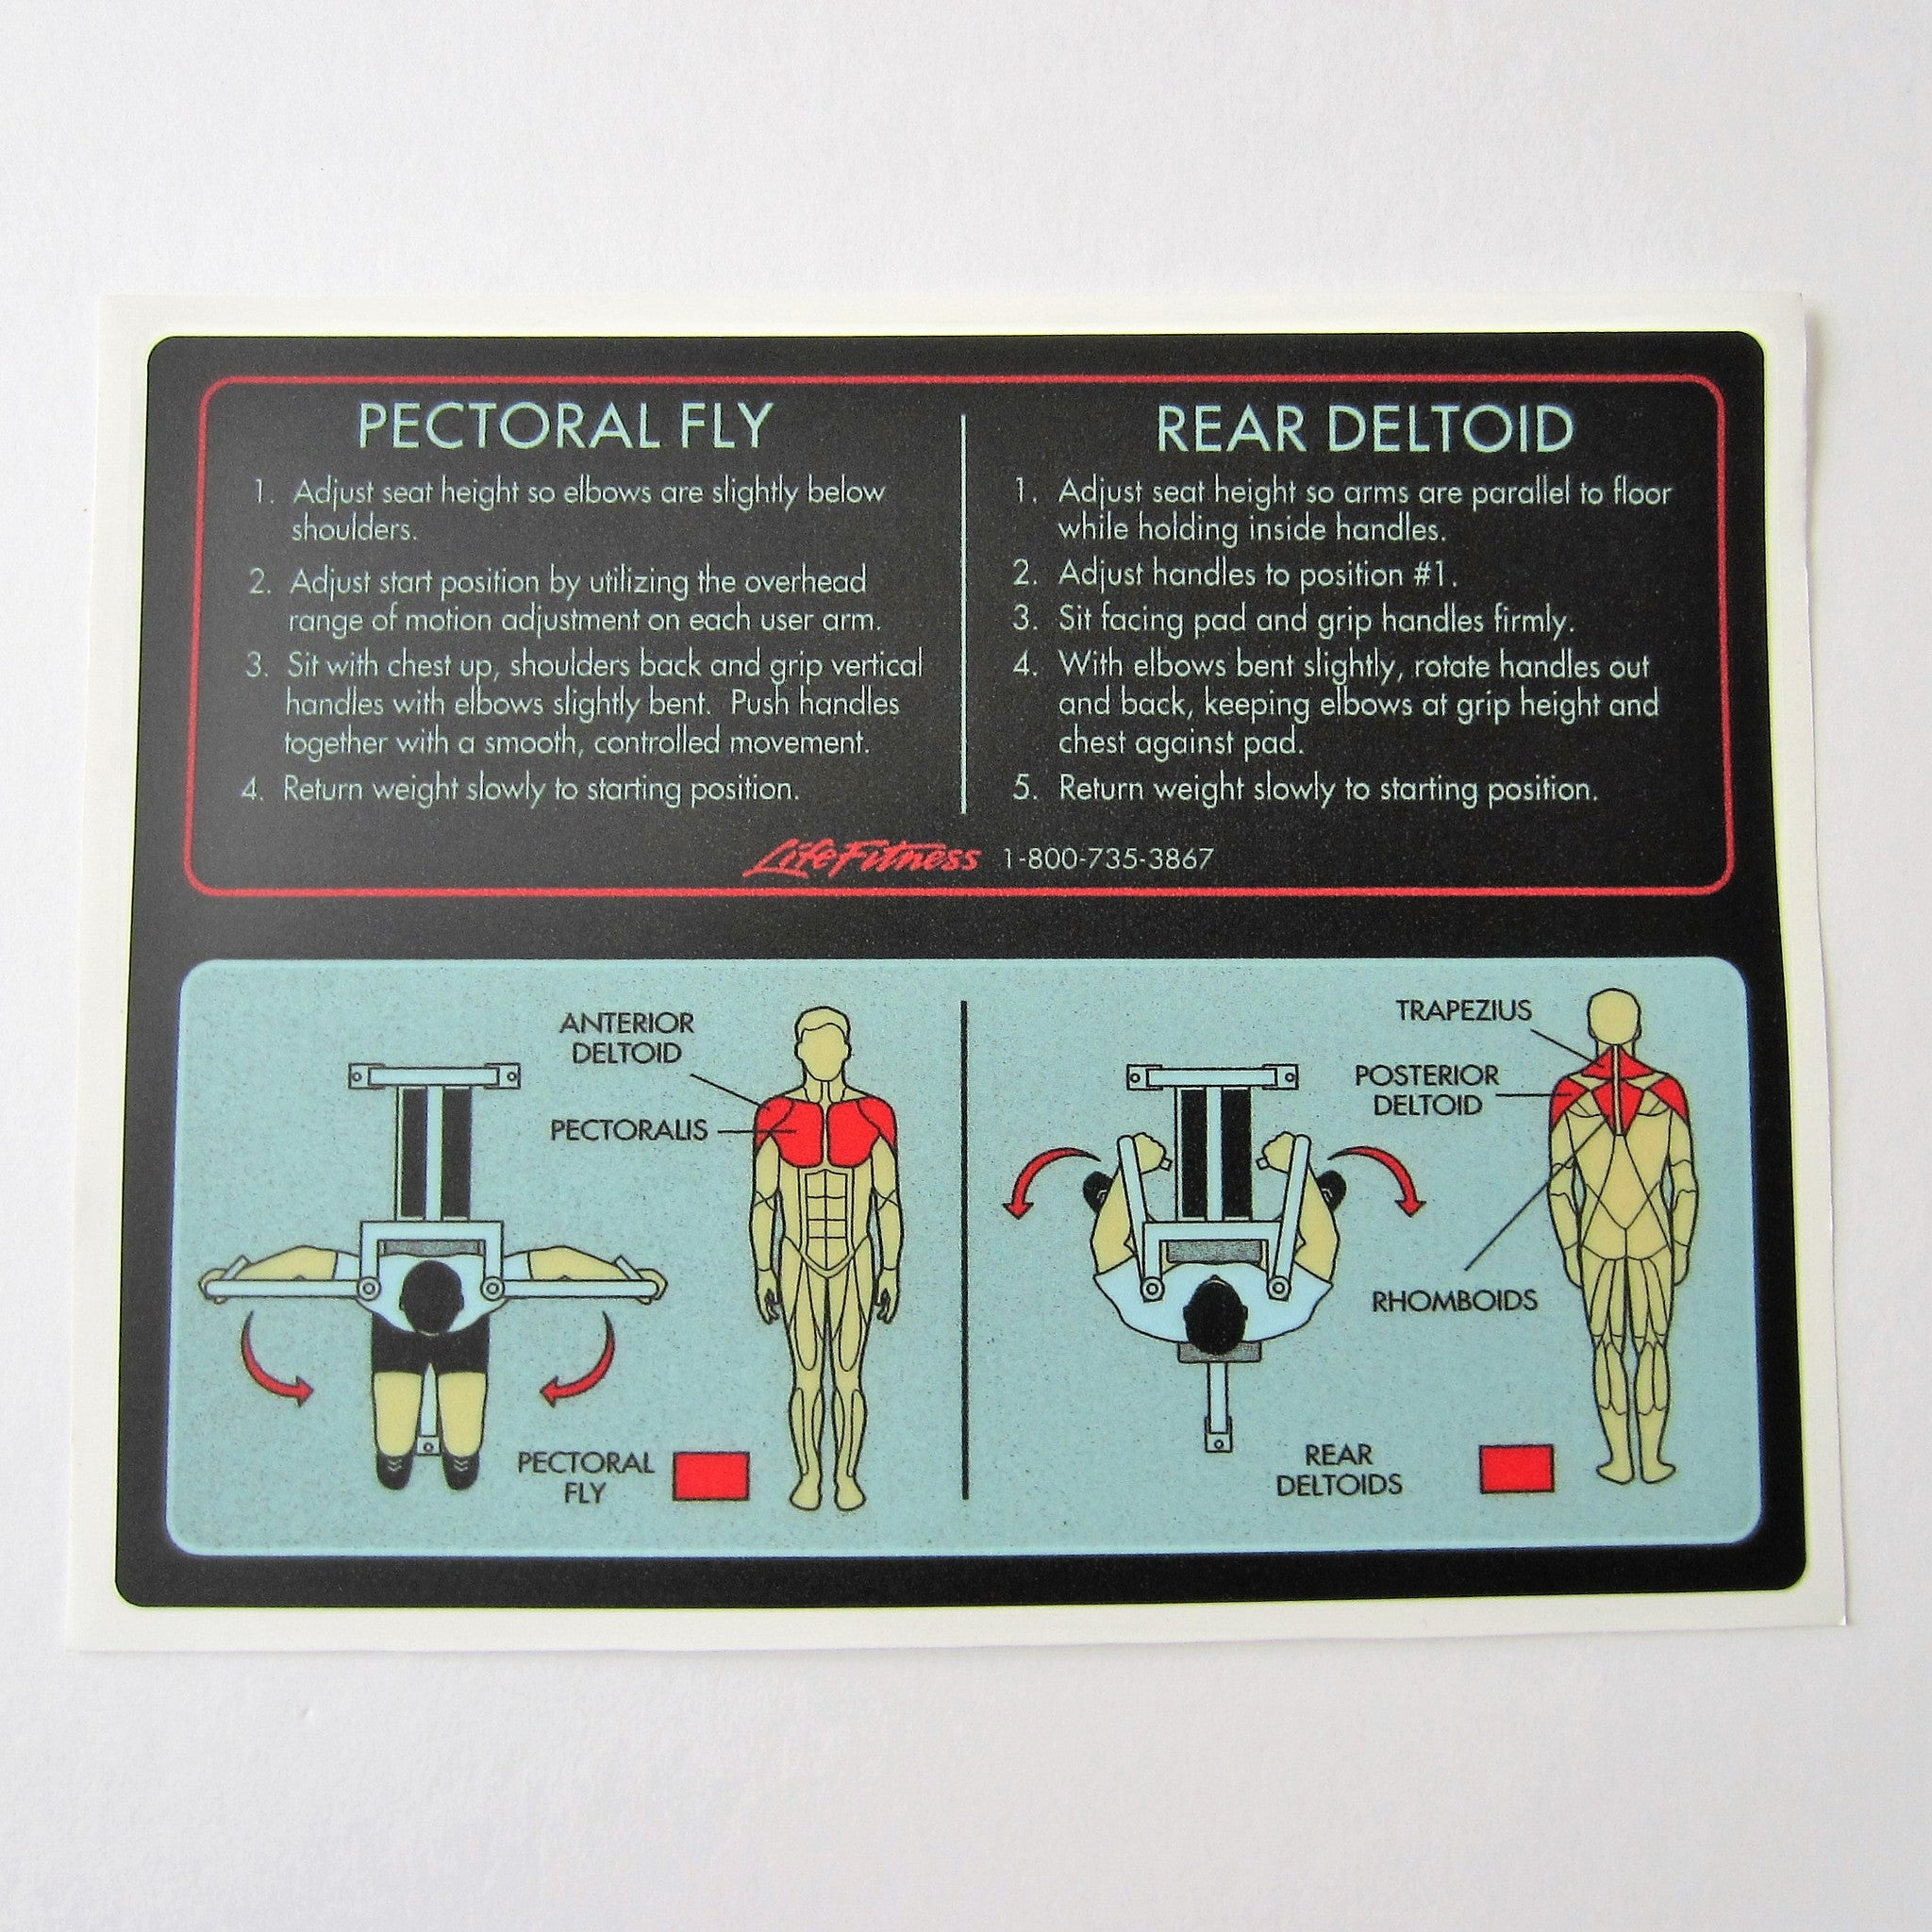 Pro 1 Pectoral Fly / Rear Deltoid